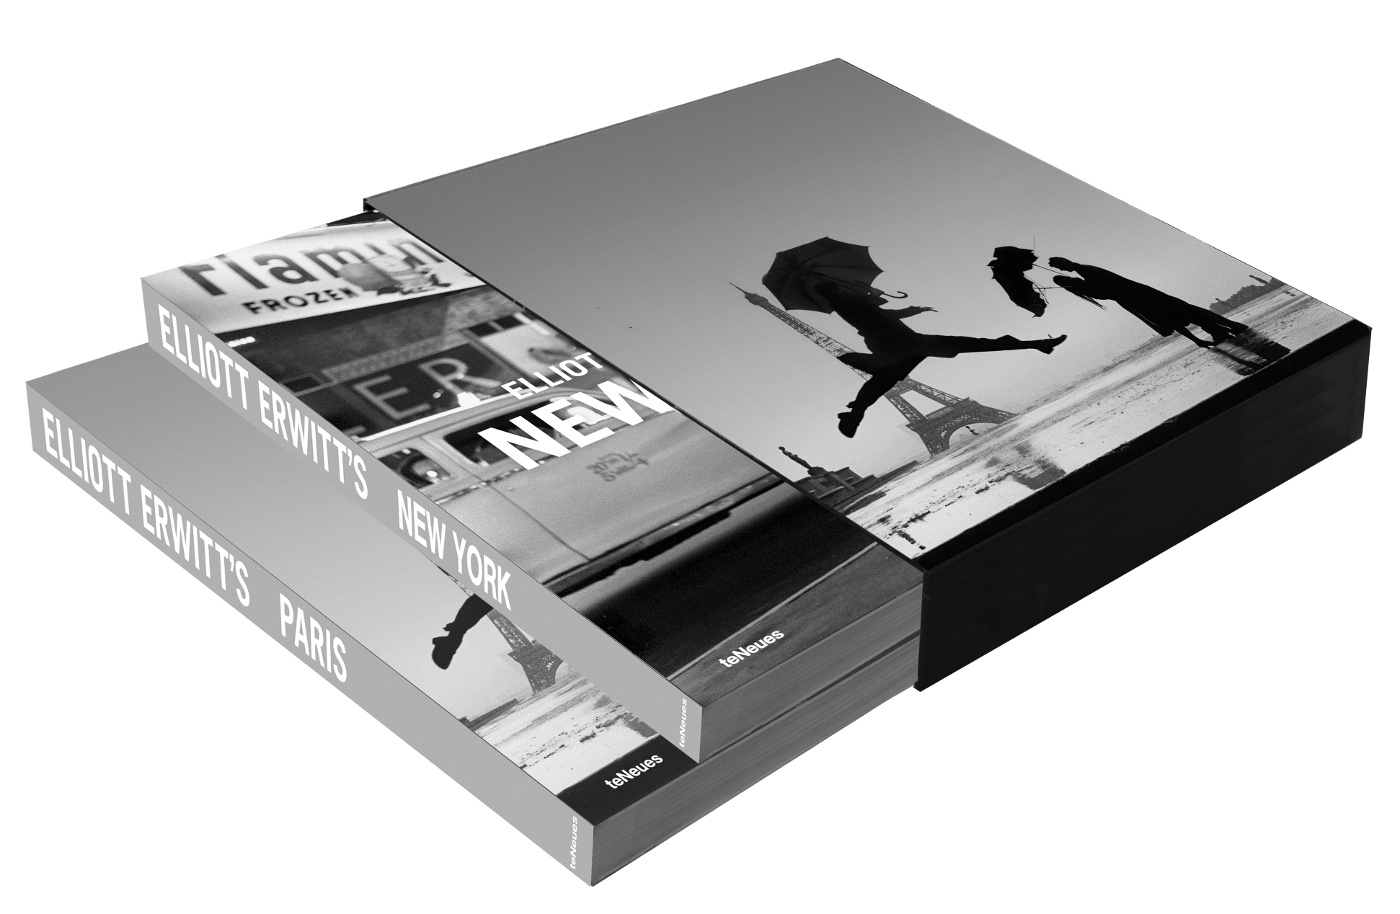 NEW YORK / PARIS BOXSET